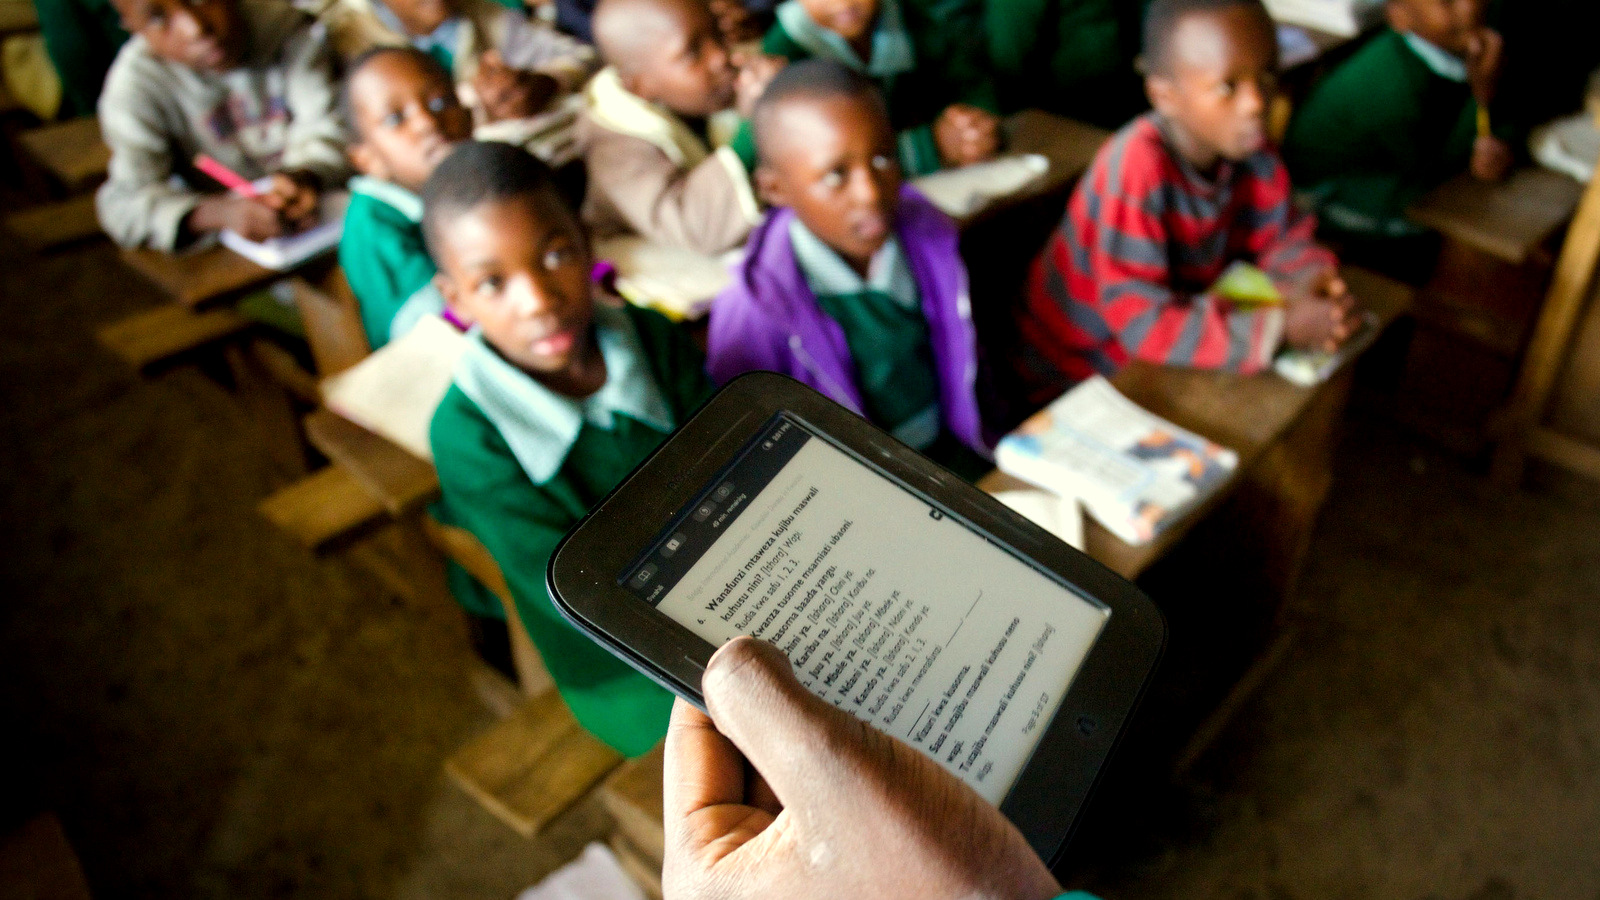 Every lesson is tightly scripted. The teachers deliver lessons by scrolling through the scripts on a tablet. Even small details such as praising students are listed in the class instructions.  (Frederic Courbet/NPR)